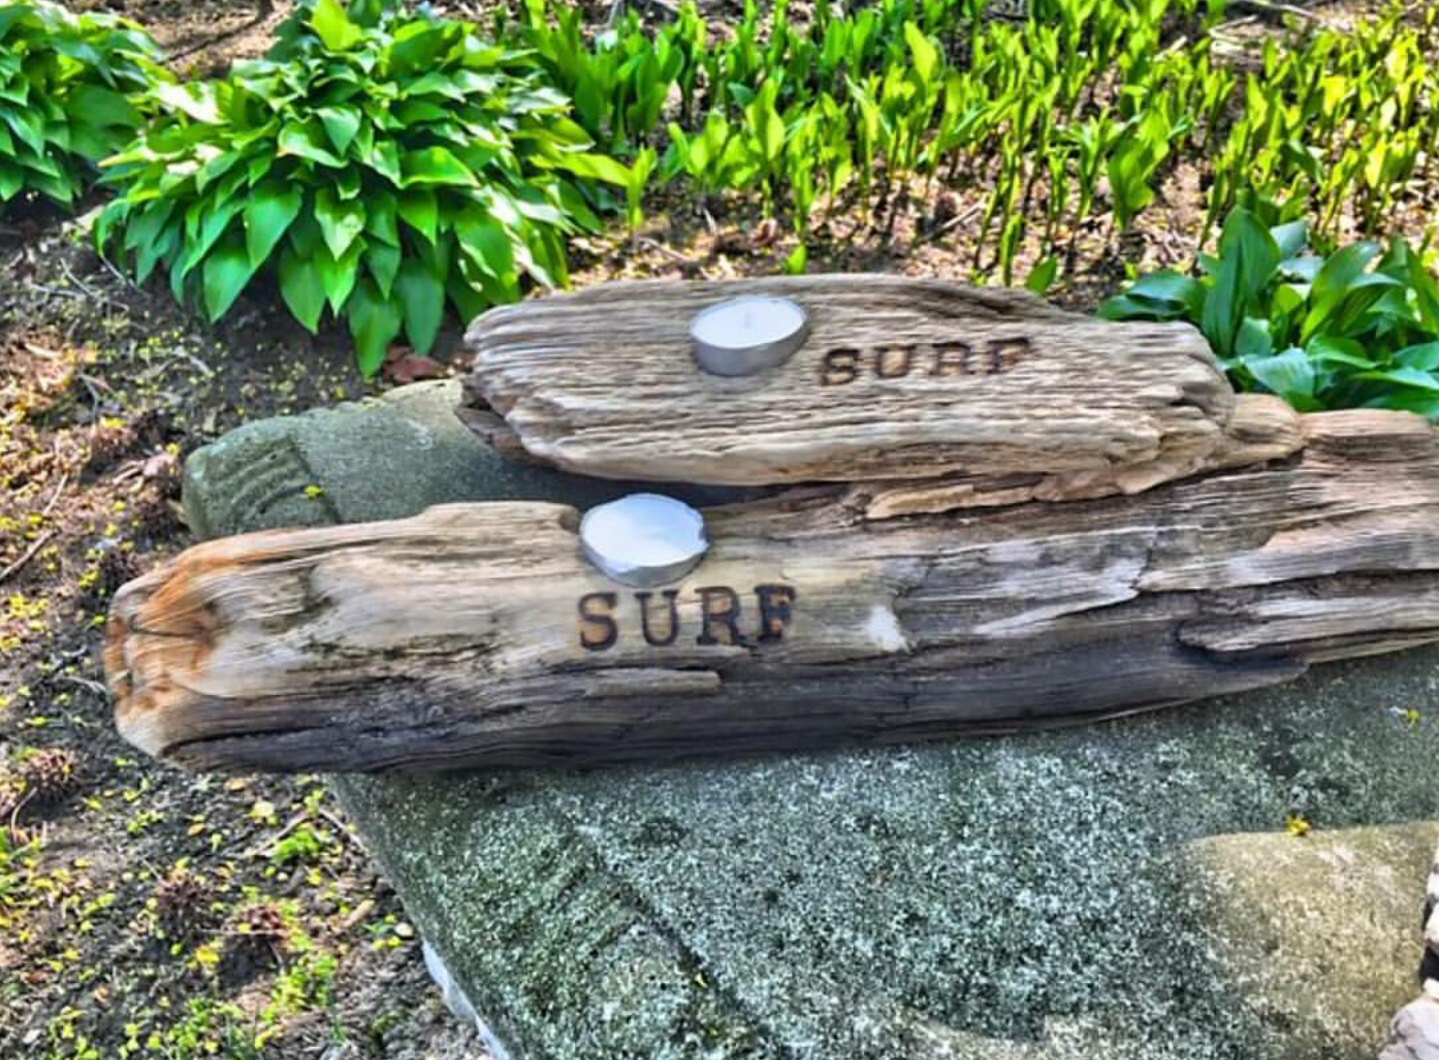 Surf driftwood candle holders.png